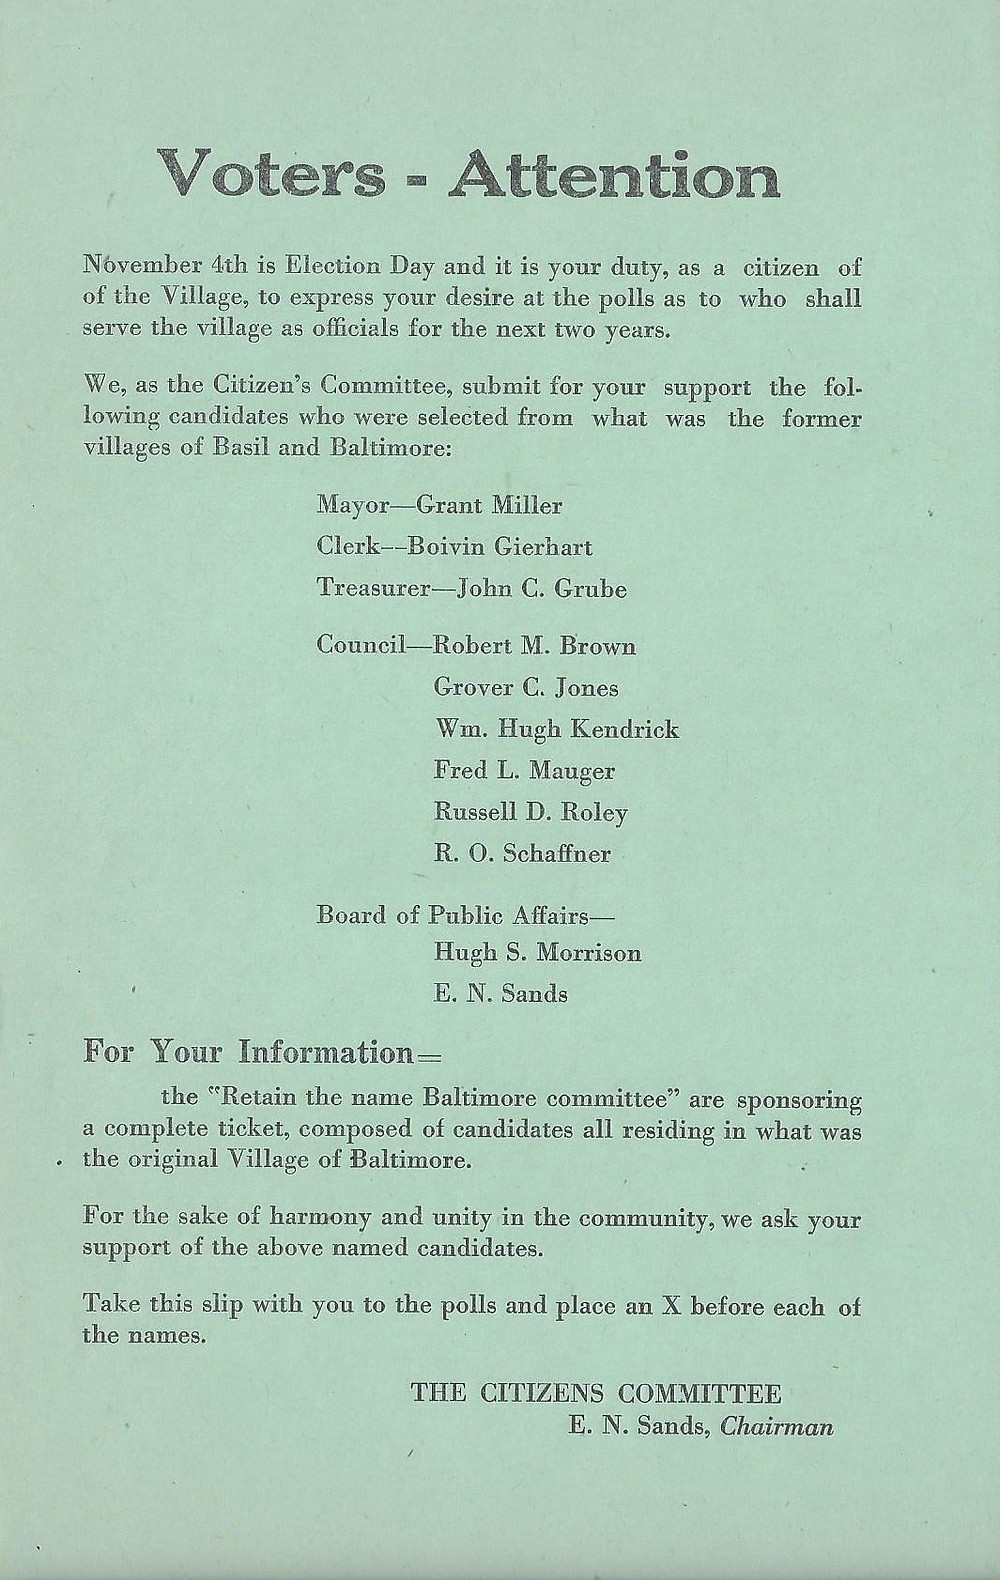 """Election Day reminder from The Citizens Committee of Baltimore encouraging residents to vote for the candidates sponsored by the Retain the Name """"Baltimore"""" Committee"""